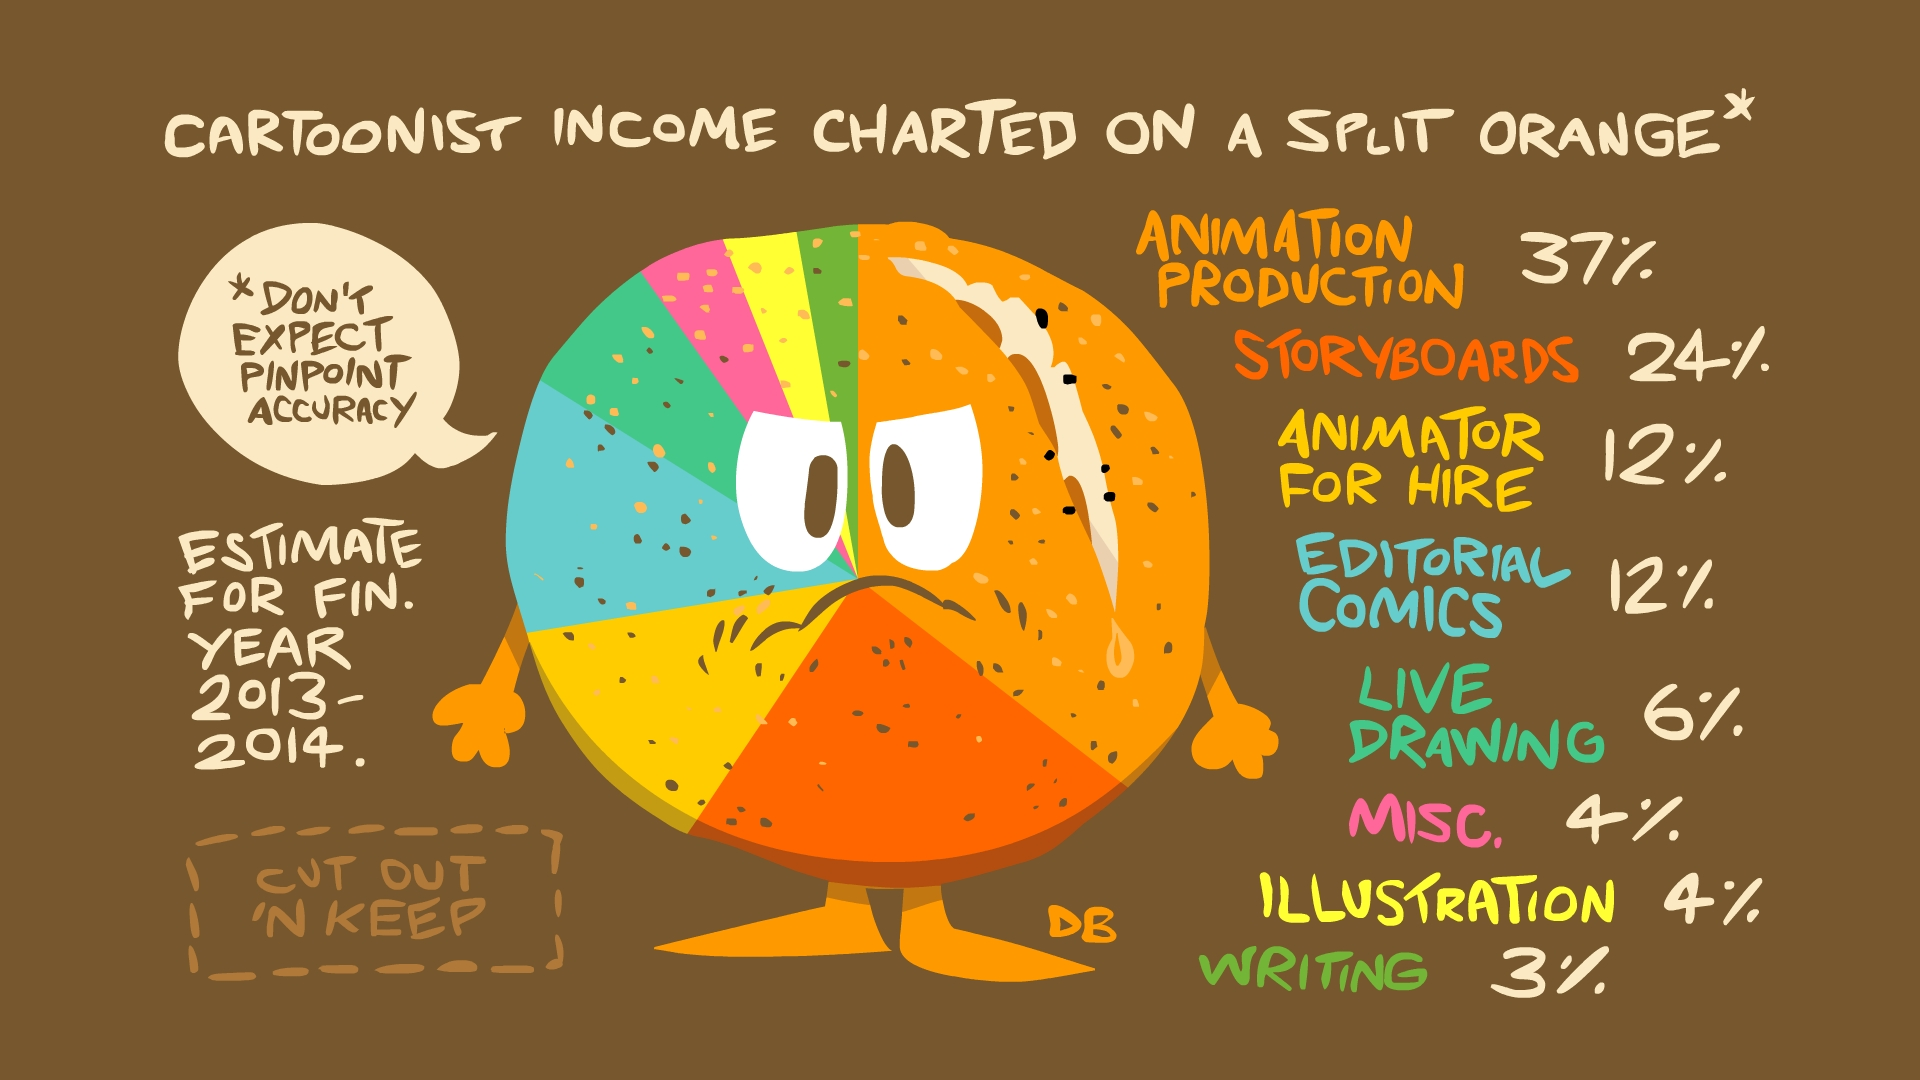 Cartoonist Income Charted On A Split Orange